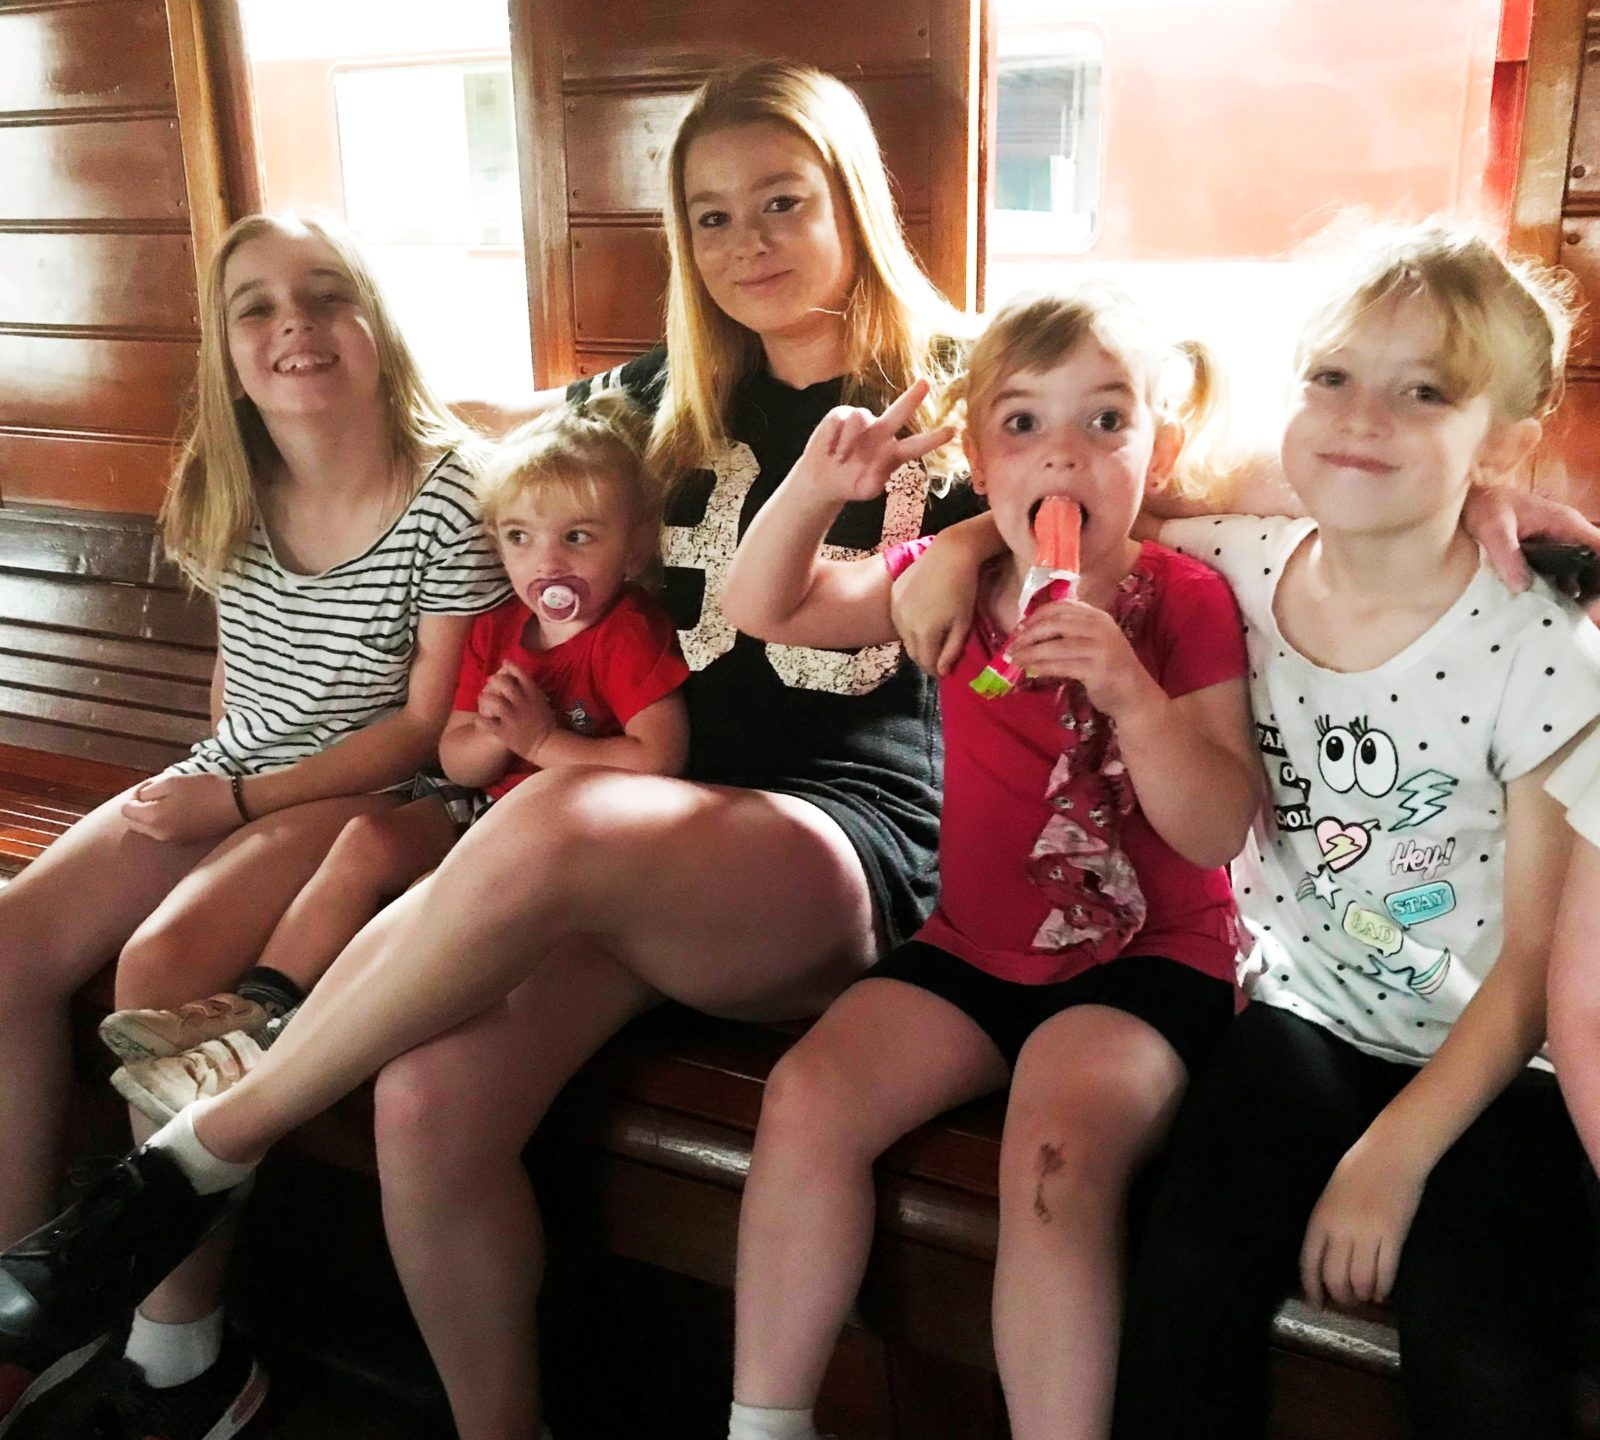 Almost 50% of all visitors to the railway museum are young familes looking to enjoy low cost family